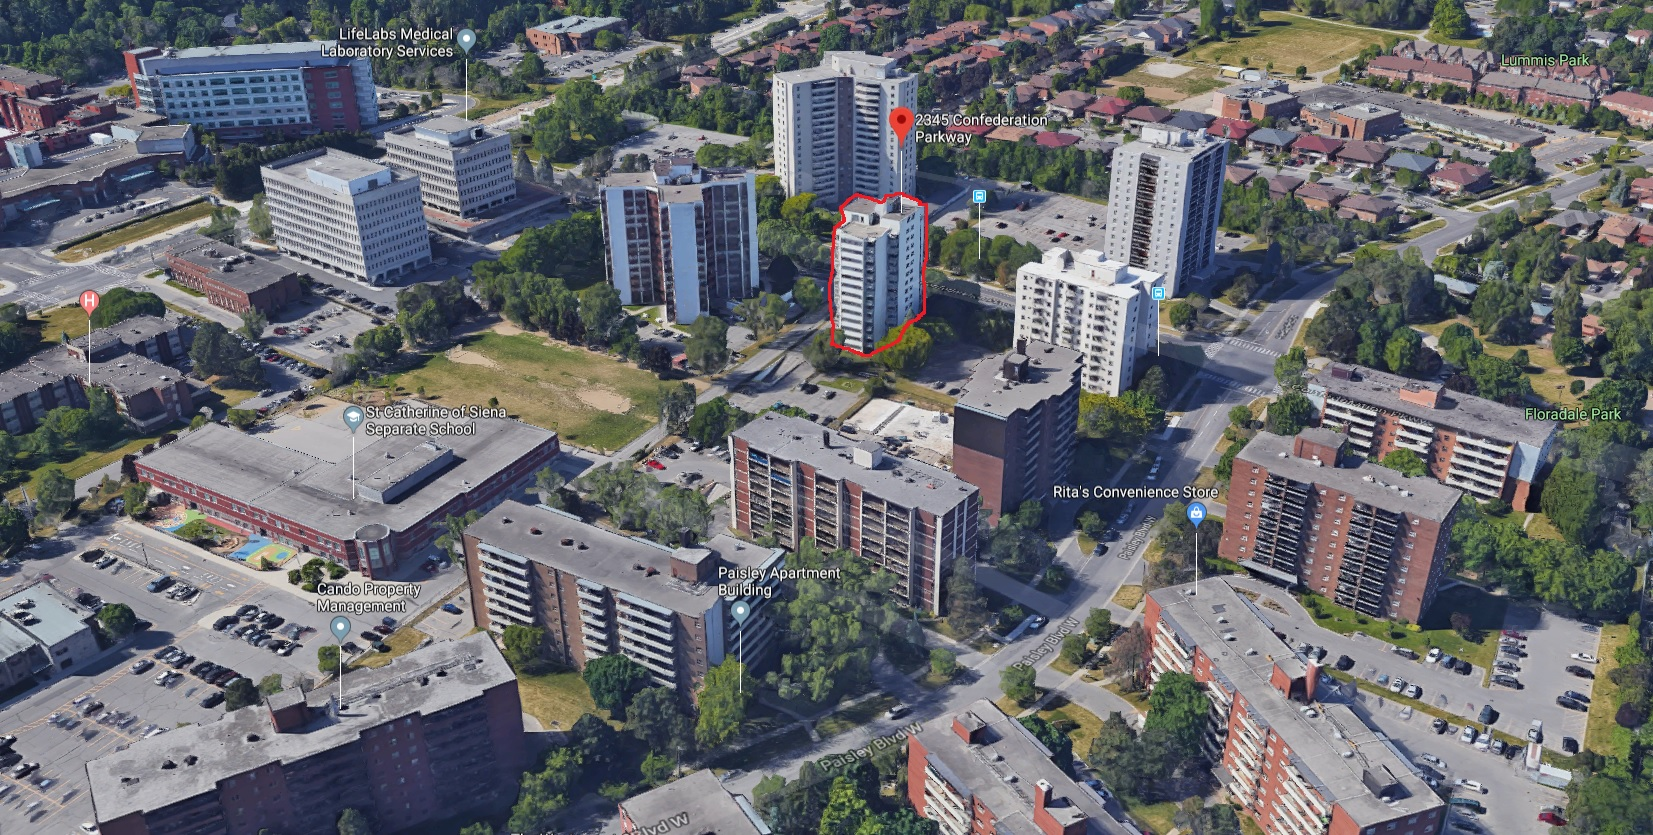 2345 Confederation Pkwy, Mississauga, ON, L5B 2H3, Canada